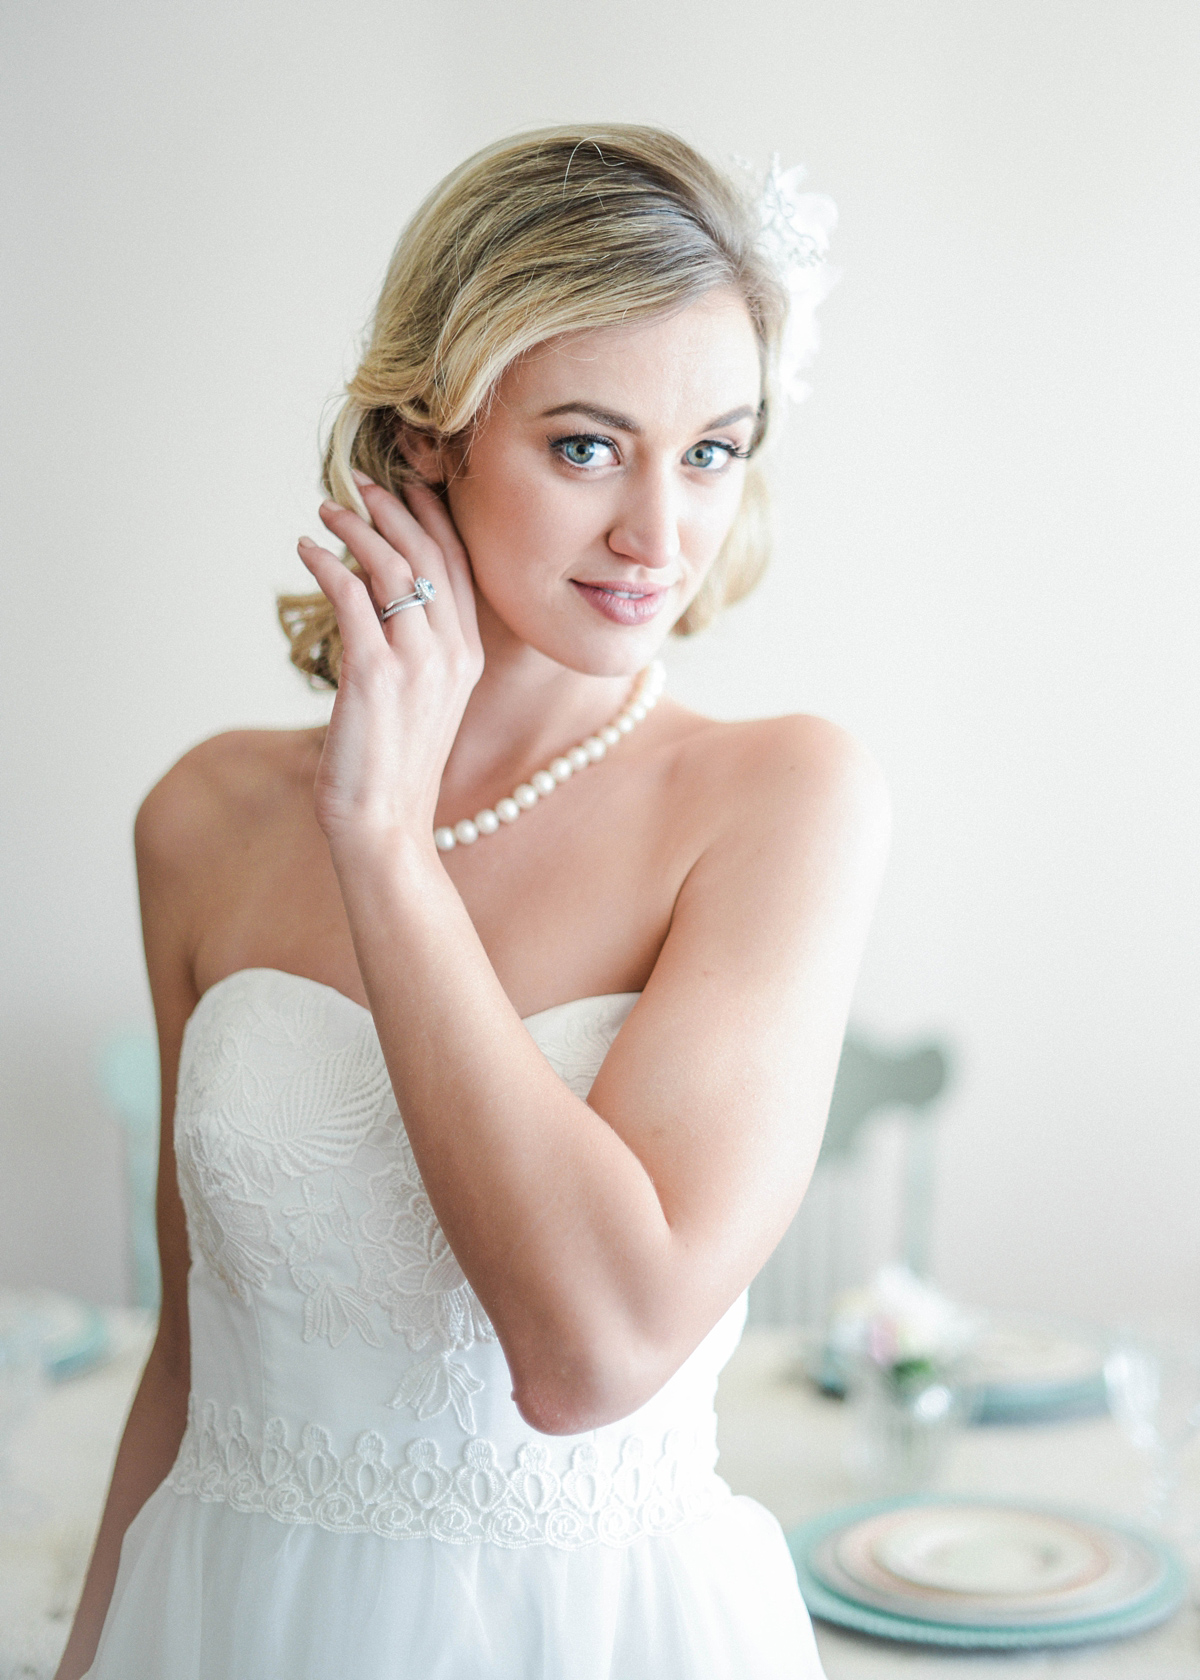 Anchored-in-Love-Spring-Focus-On-the-Coast-Weddings-Styled-Shoot-1291